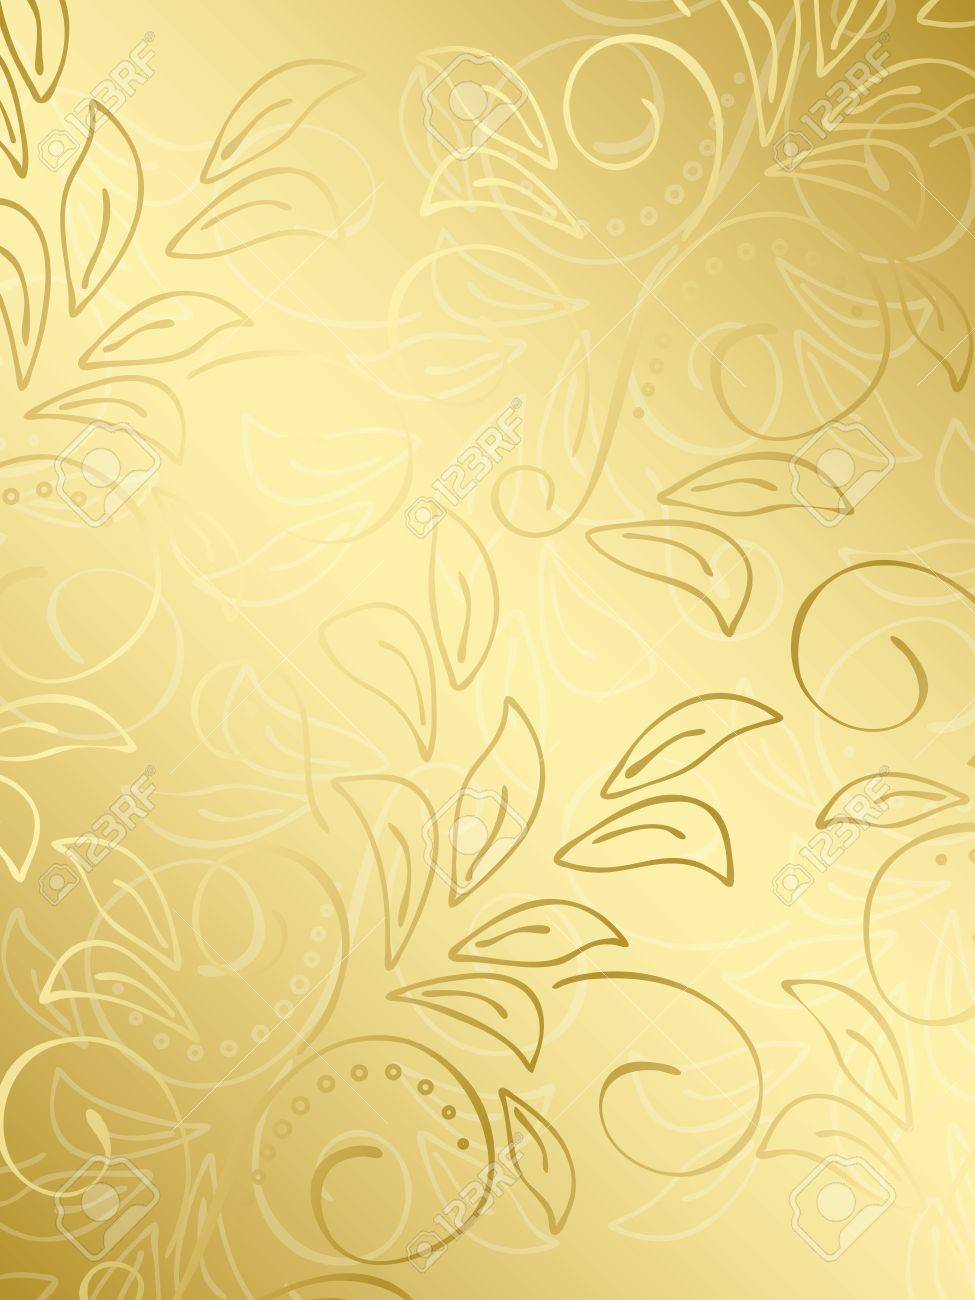 Gold Gradient Vector Vector Gold Floral